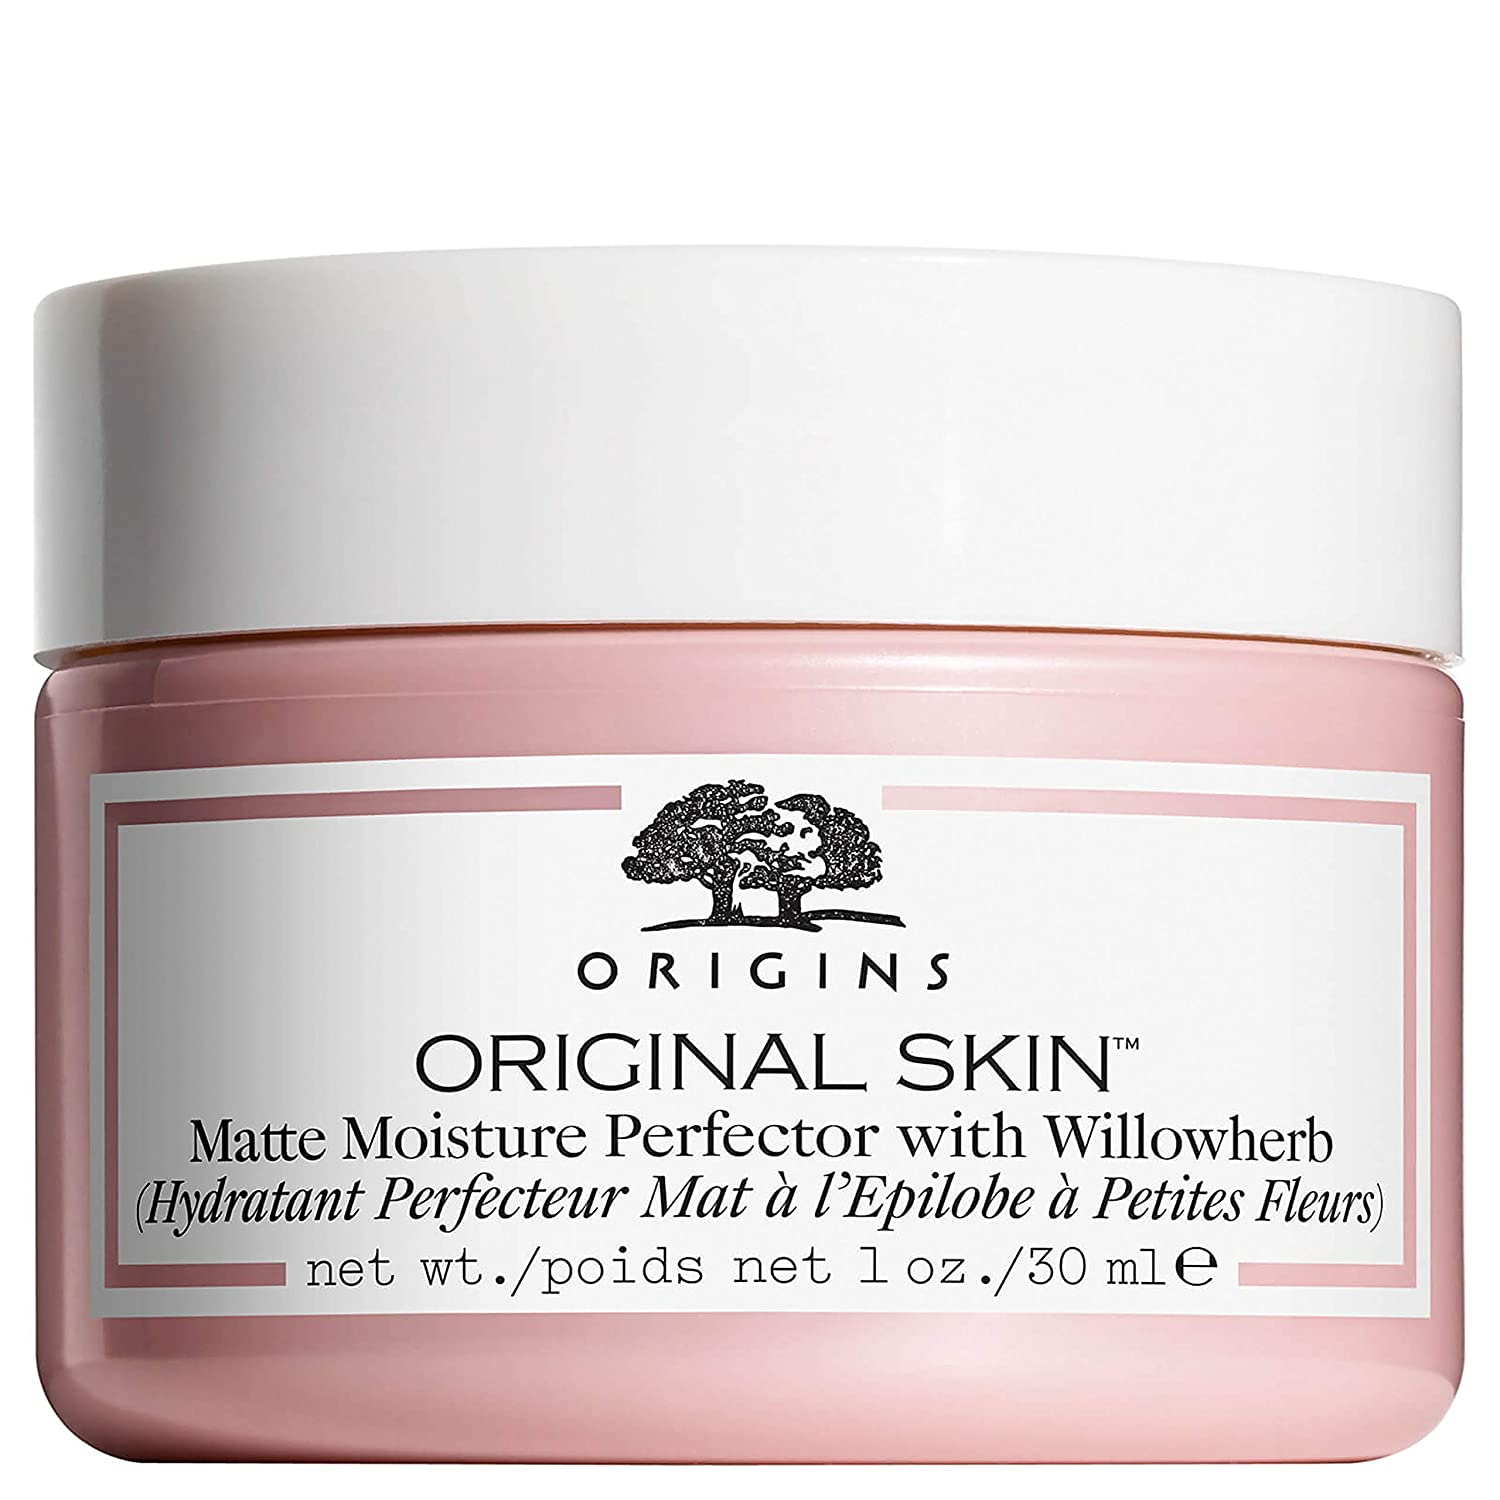 Origins Original Skin Matte Moisture Perfector 30ml